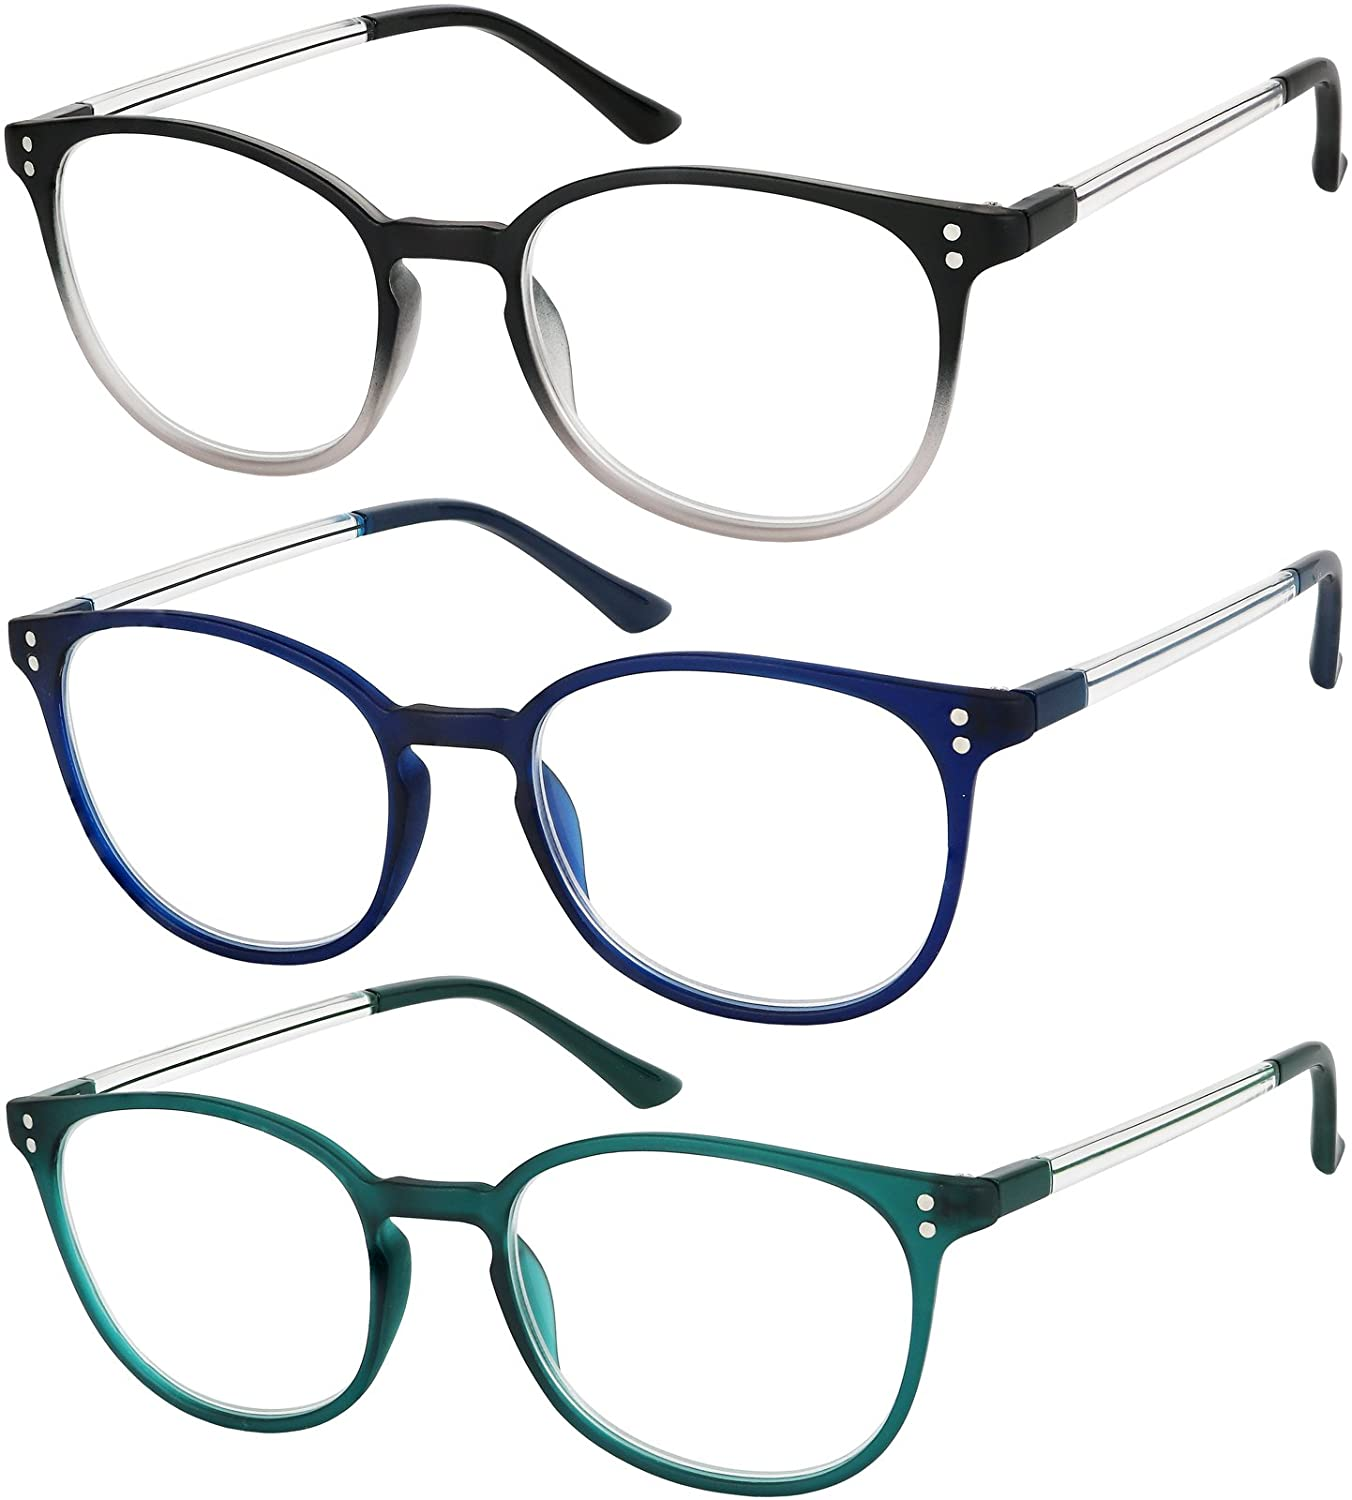 90375831808 Amazon.com  Reading Glasses 3 Pair Stylish Color Readers Fashion Glasses  for Reading Men   Women +1  Clothing